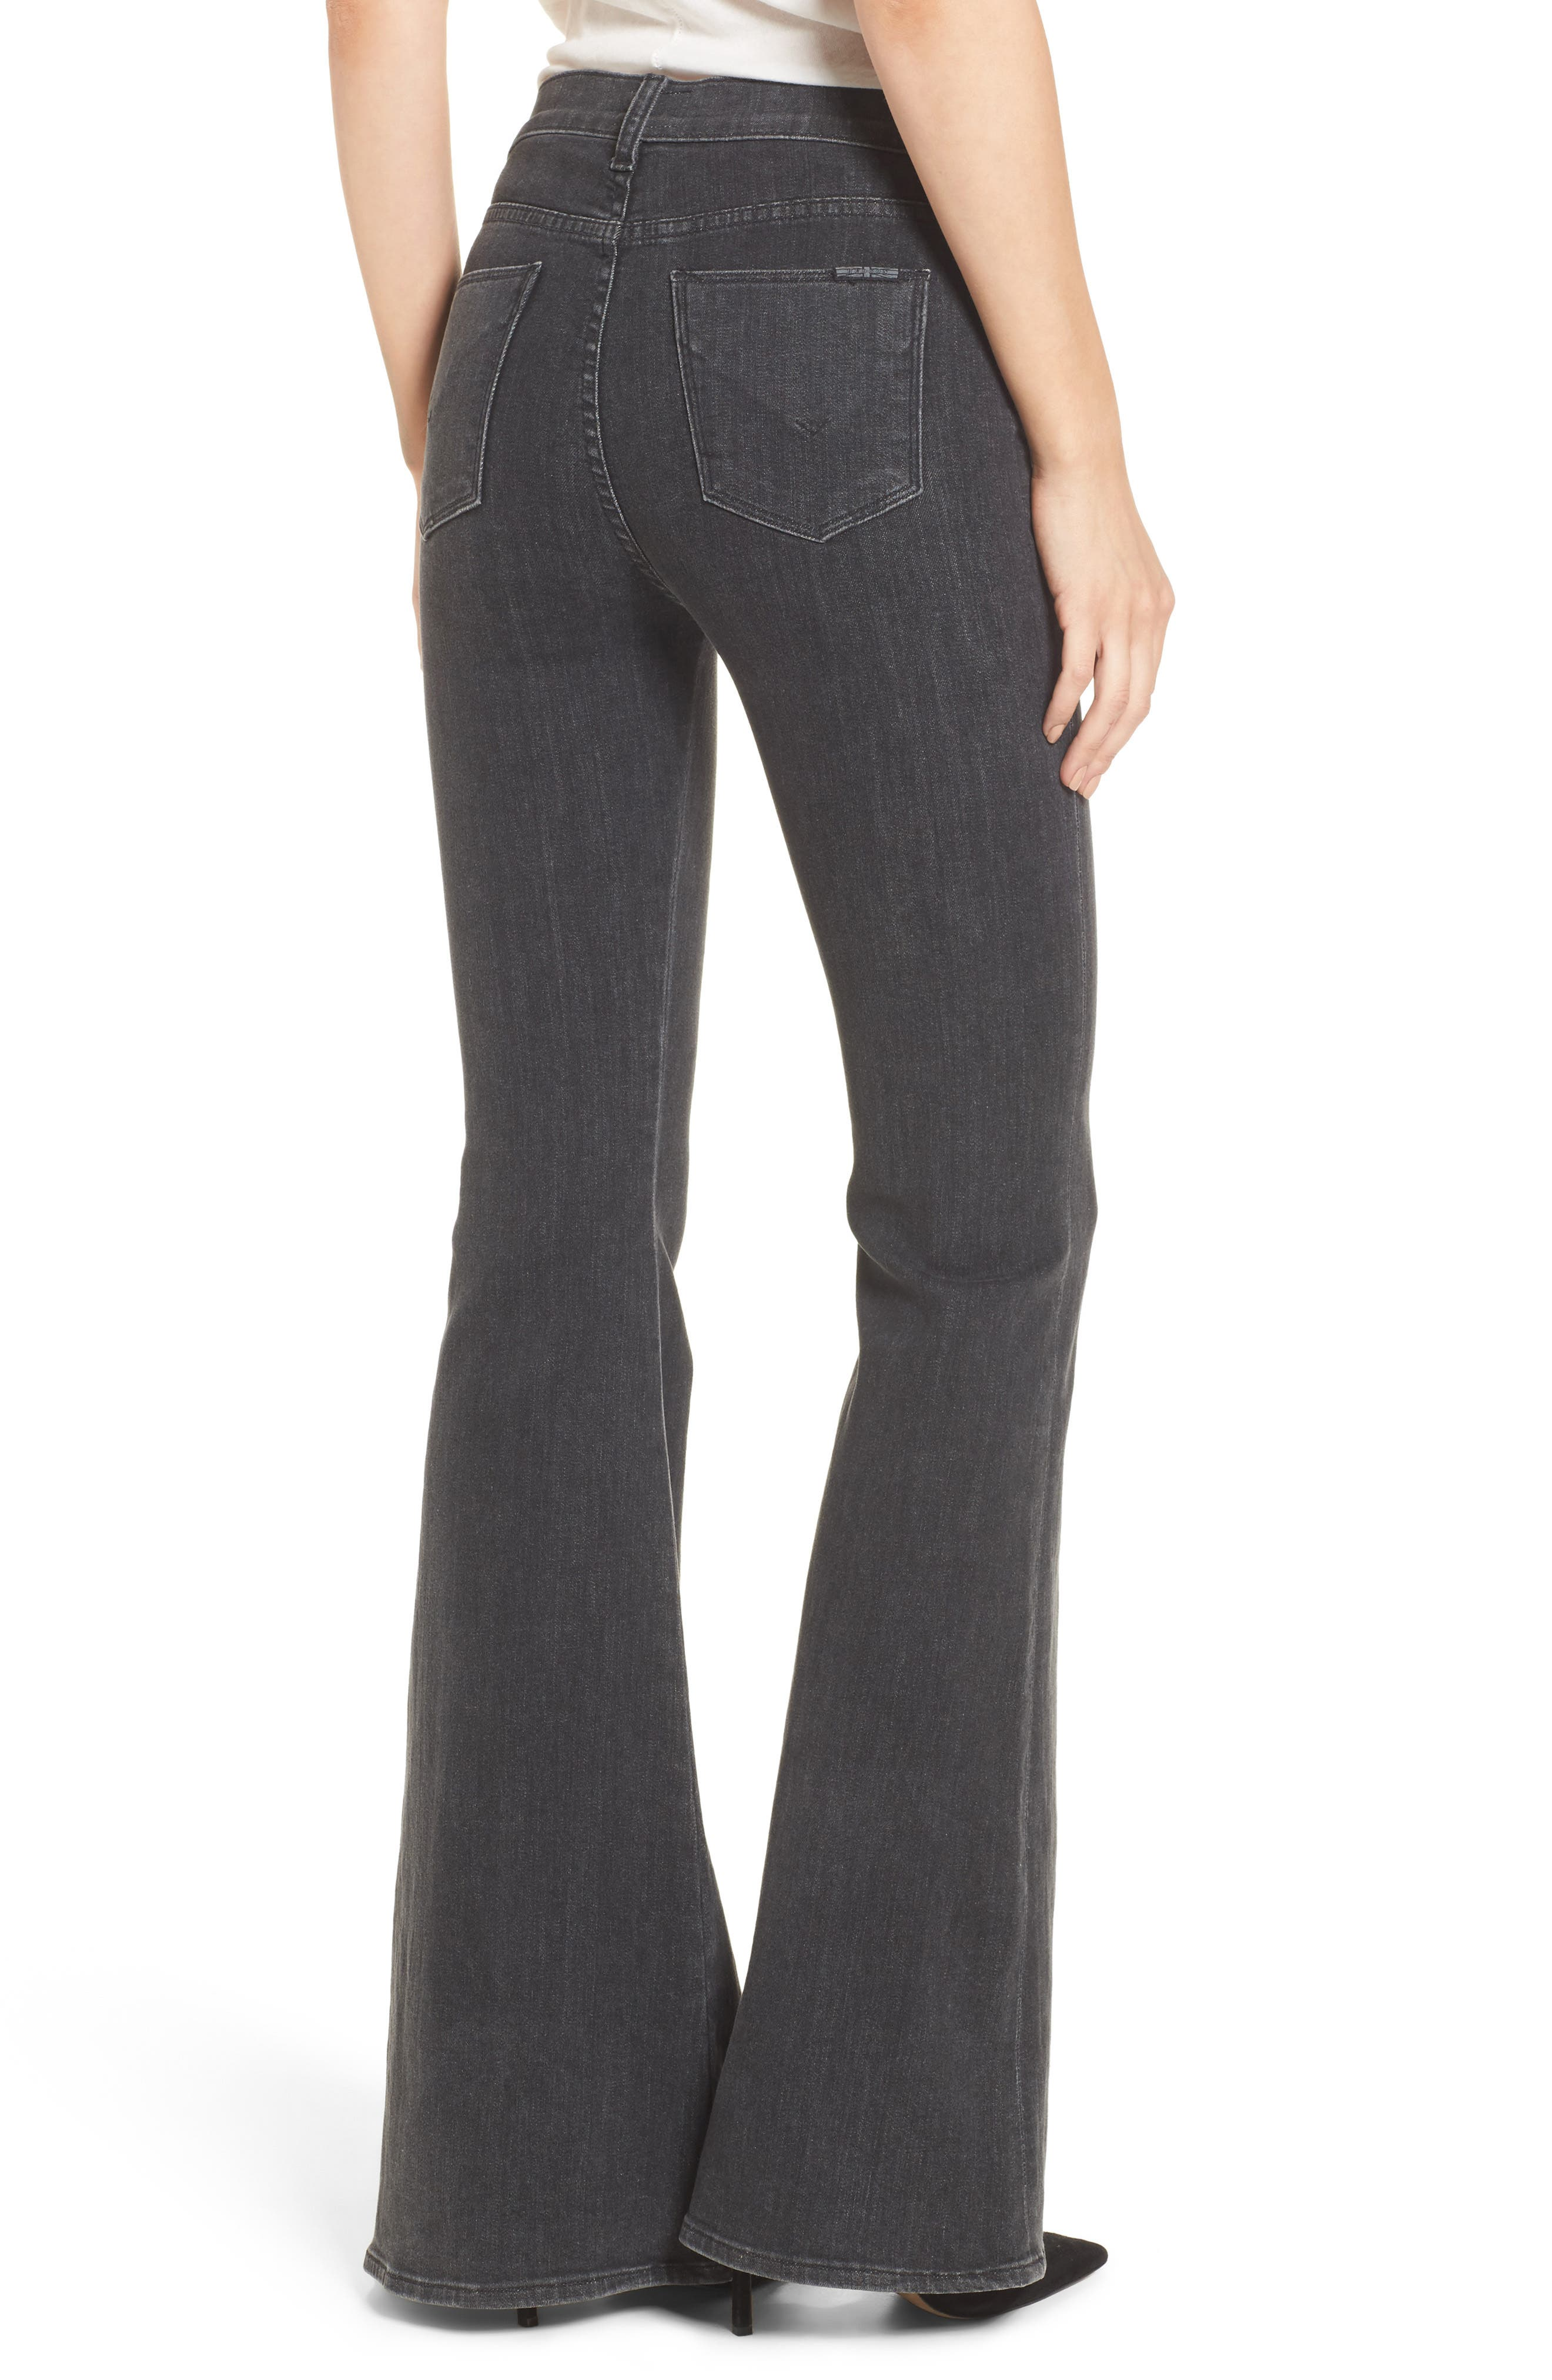 Bullocks High Waist Lace-Up Flare Jeans,                             Alternate thumbnail 2, color,